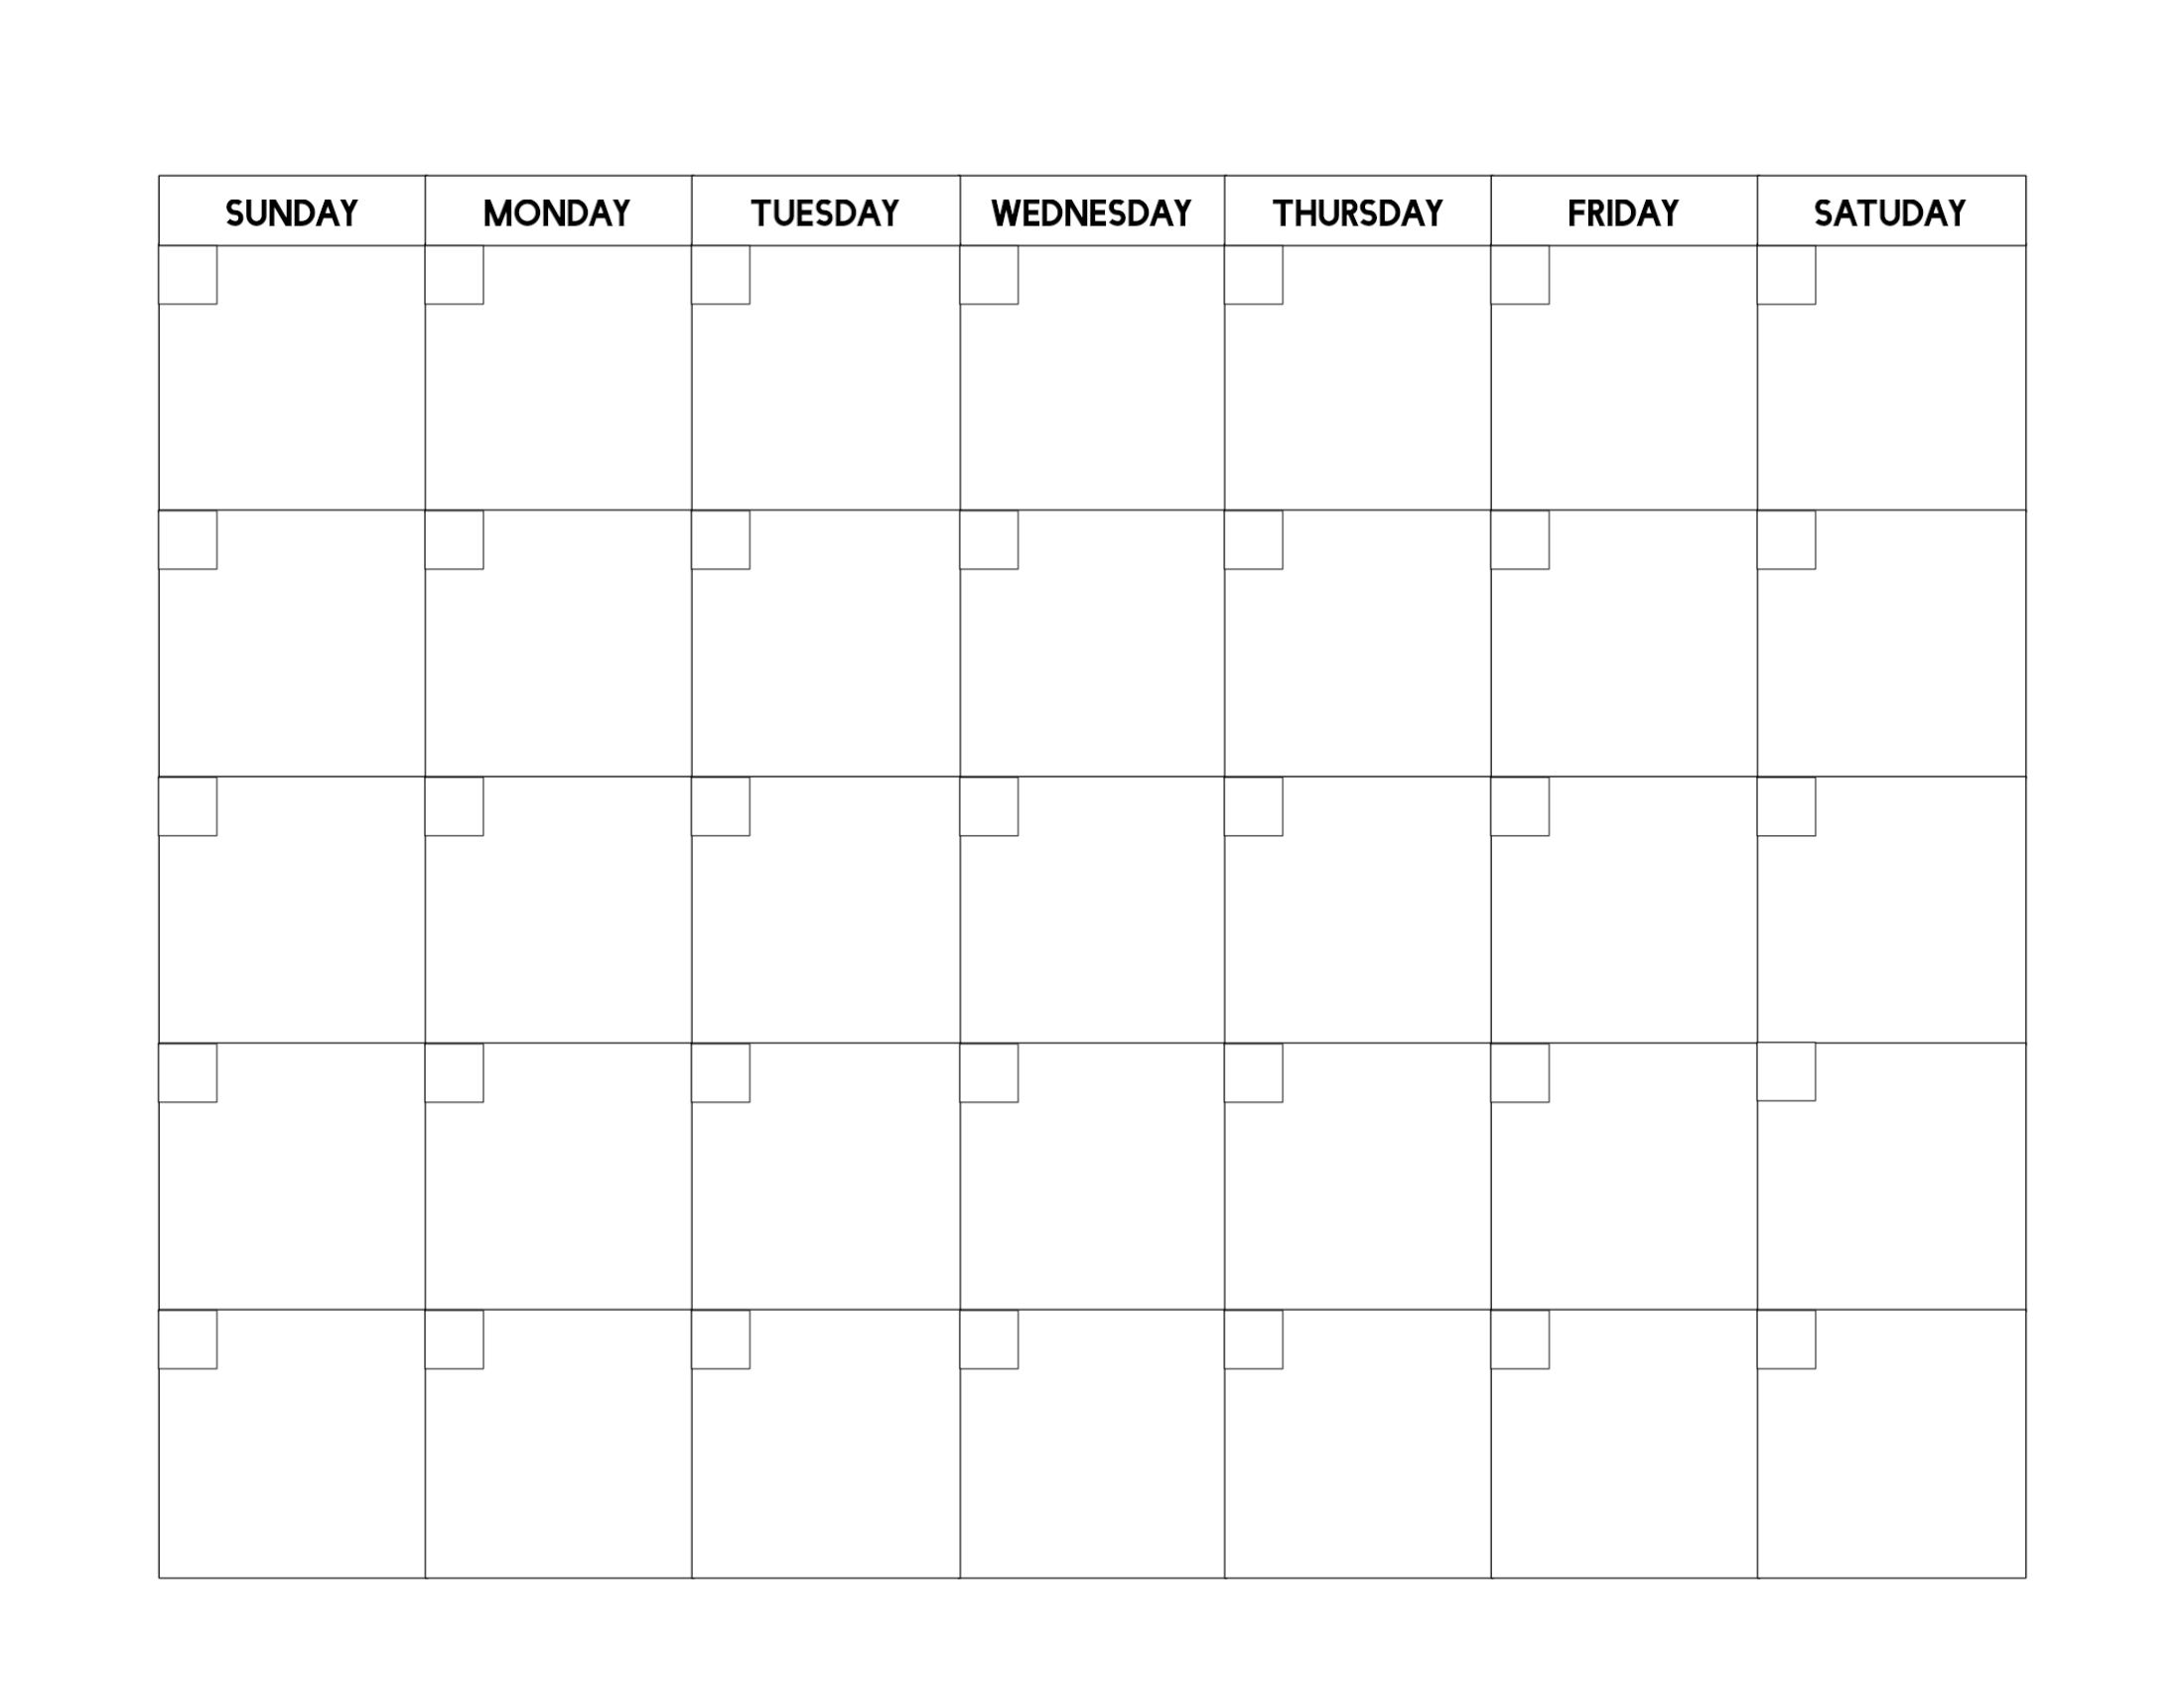 Free Printable Blank Calendar Template - Paper Trail Design Free Printable Calendar Fill In